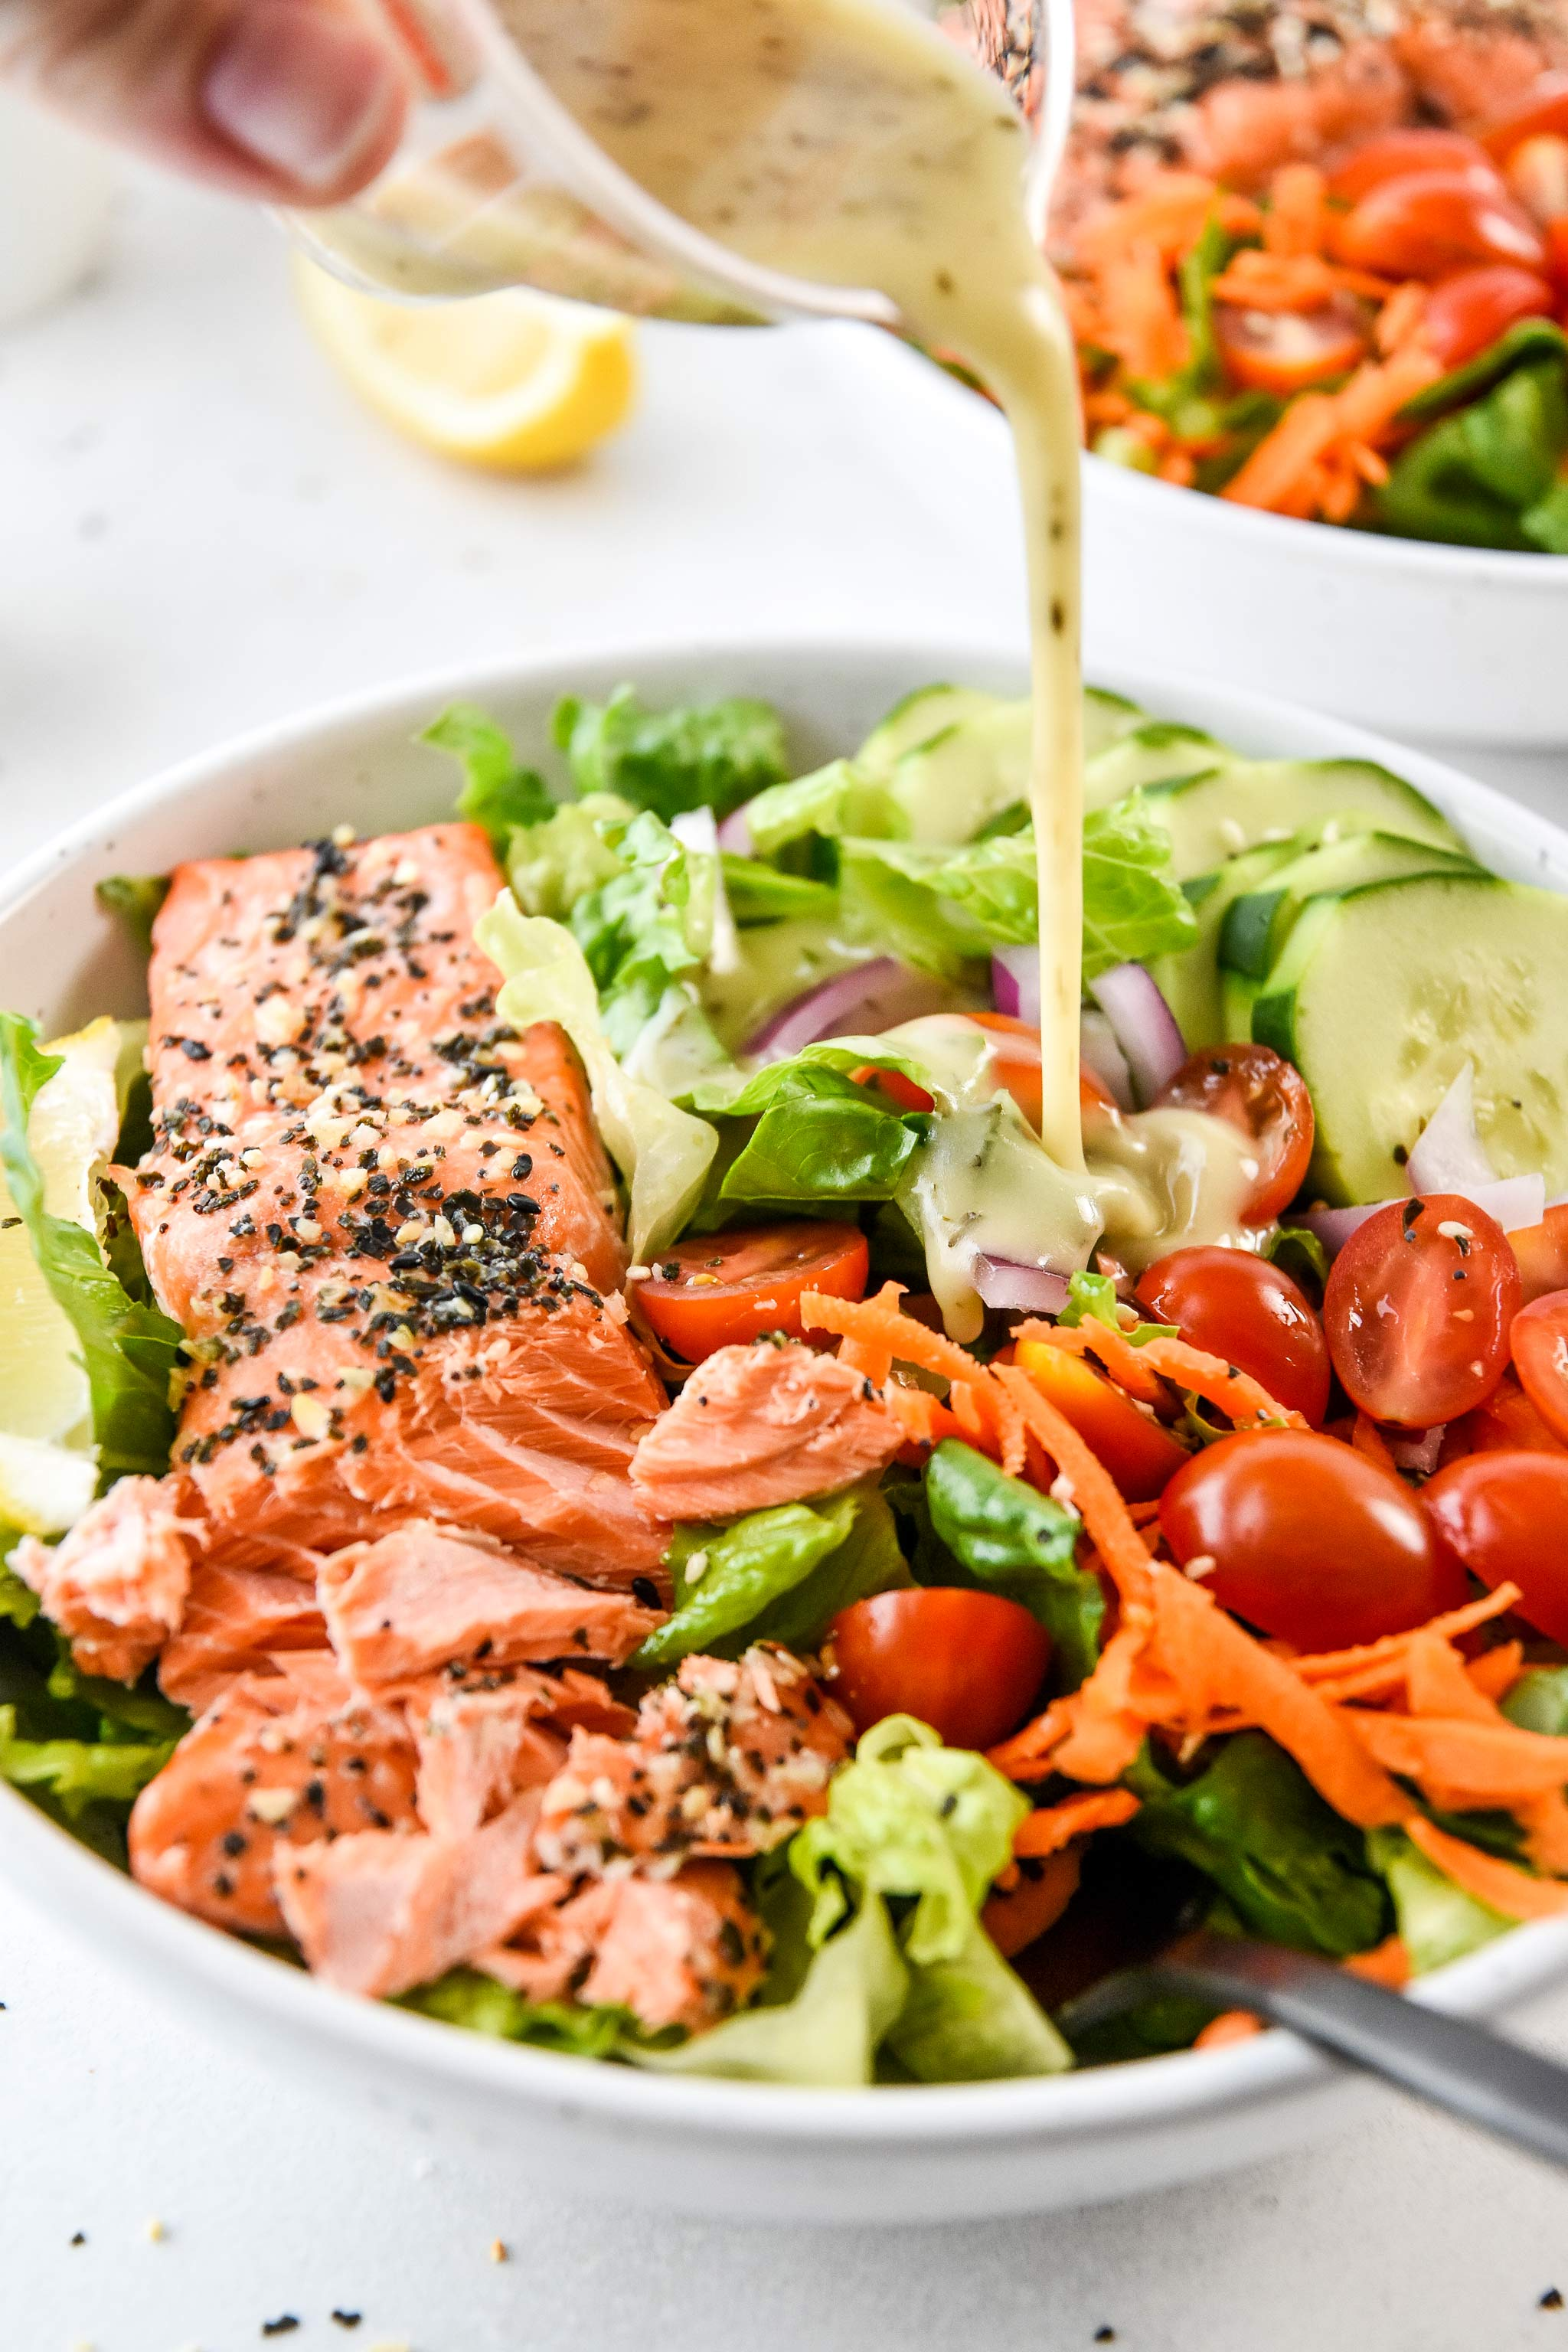 adding dressing to the everything bagel baked salmon salad